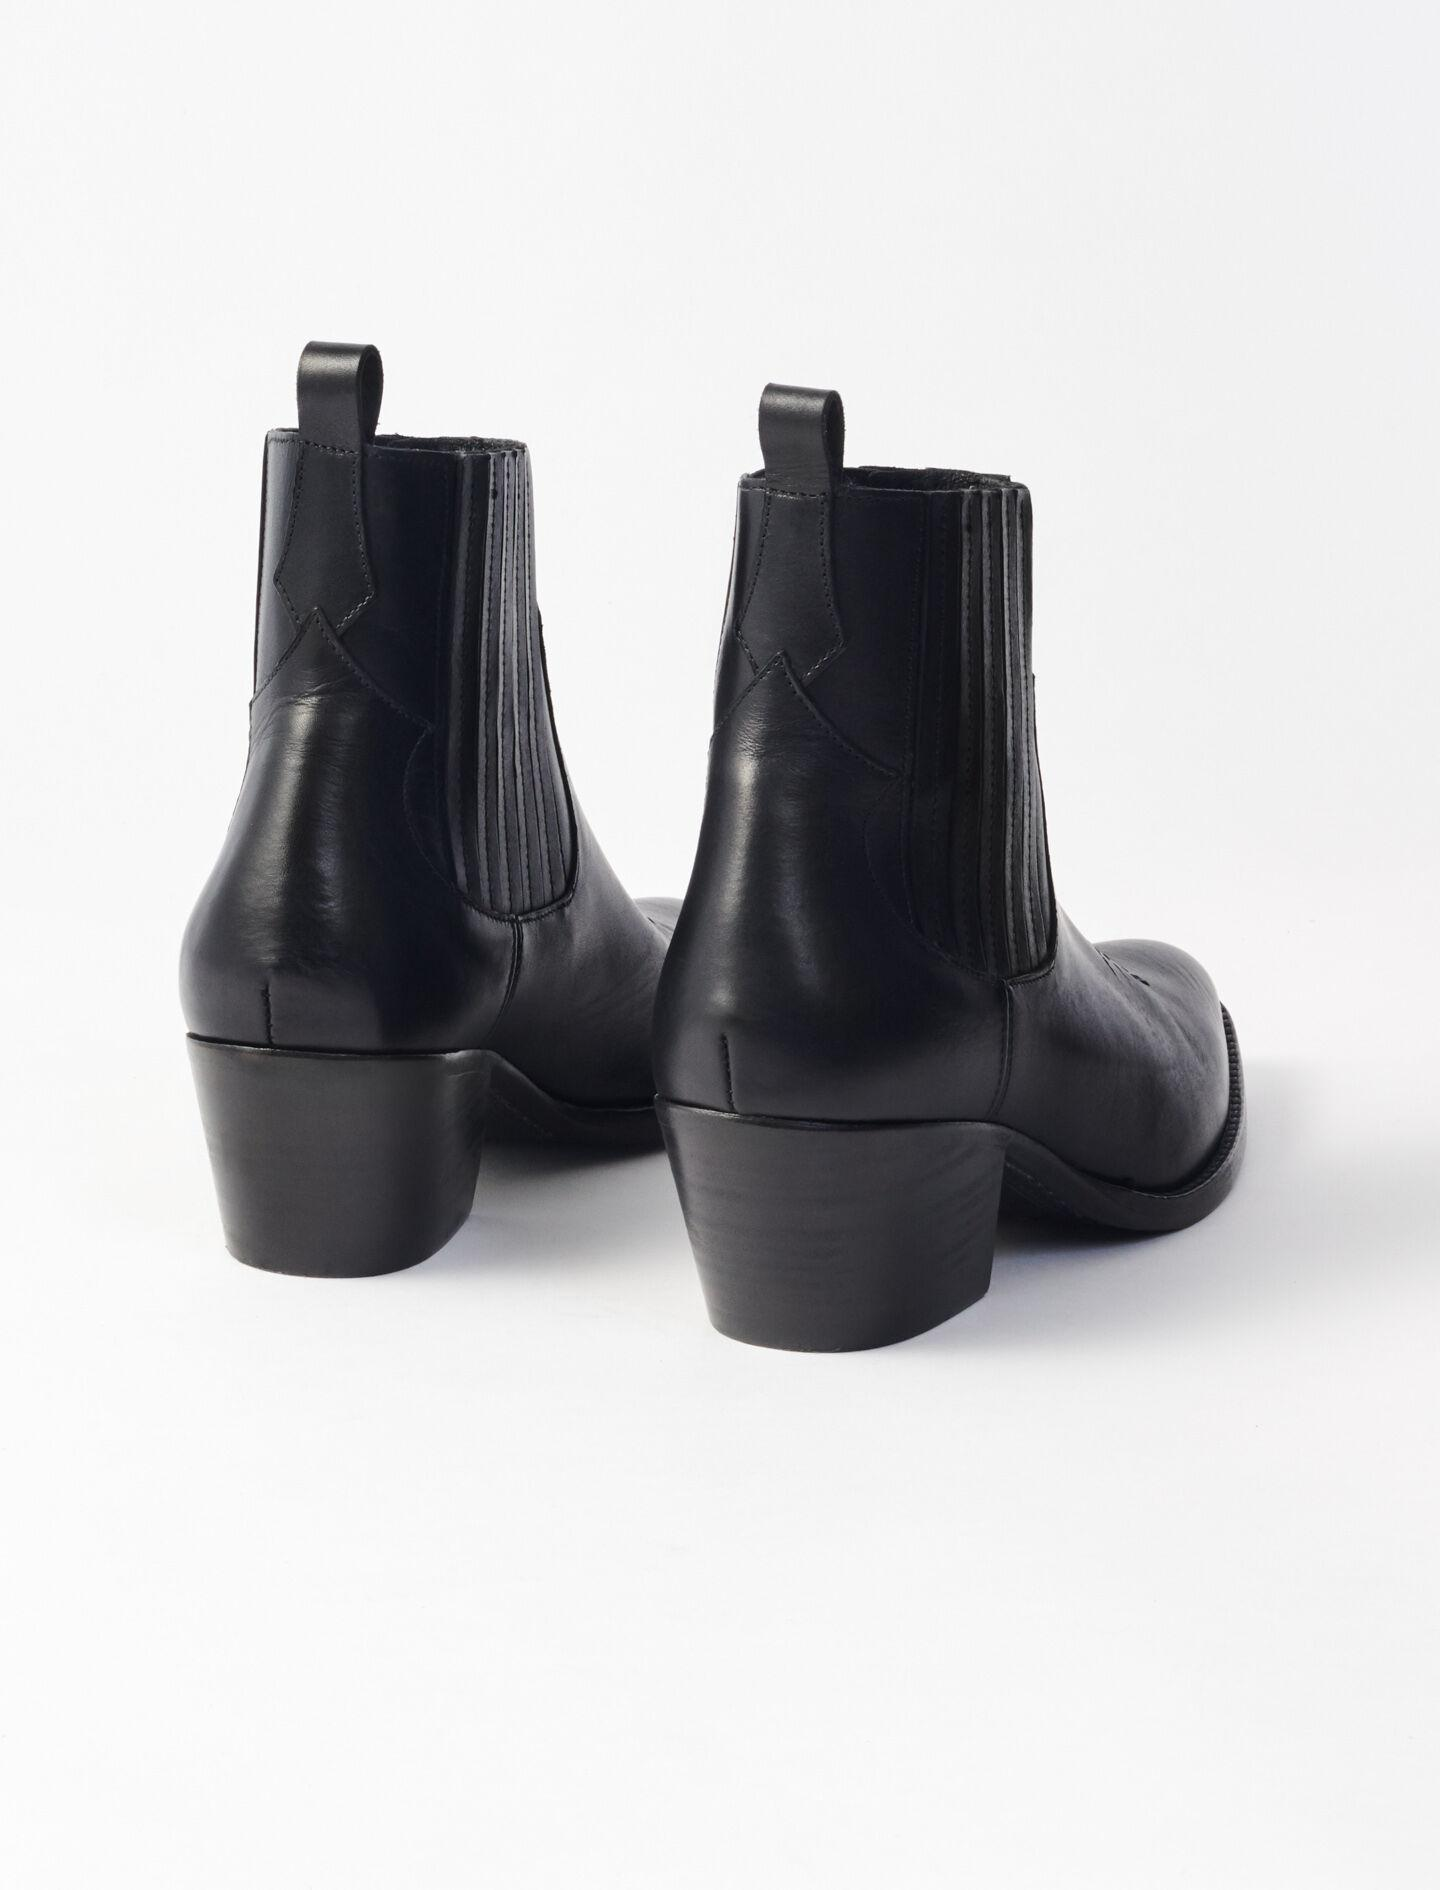 LEATHER COWBOY BOOTS 2